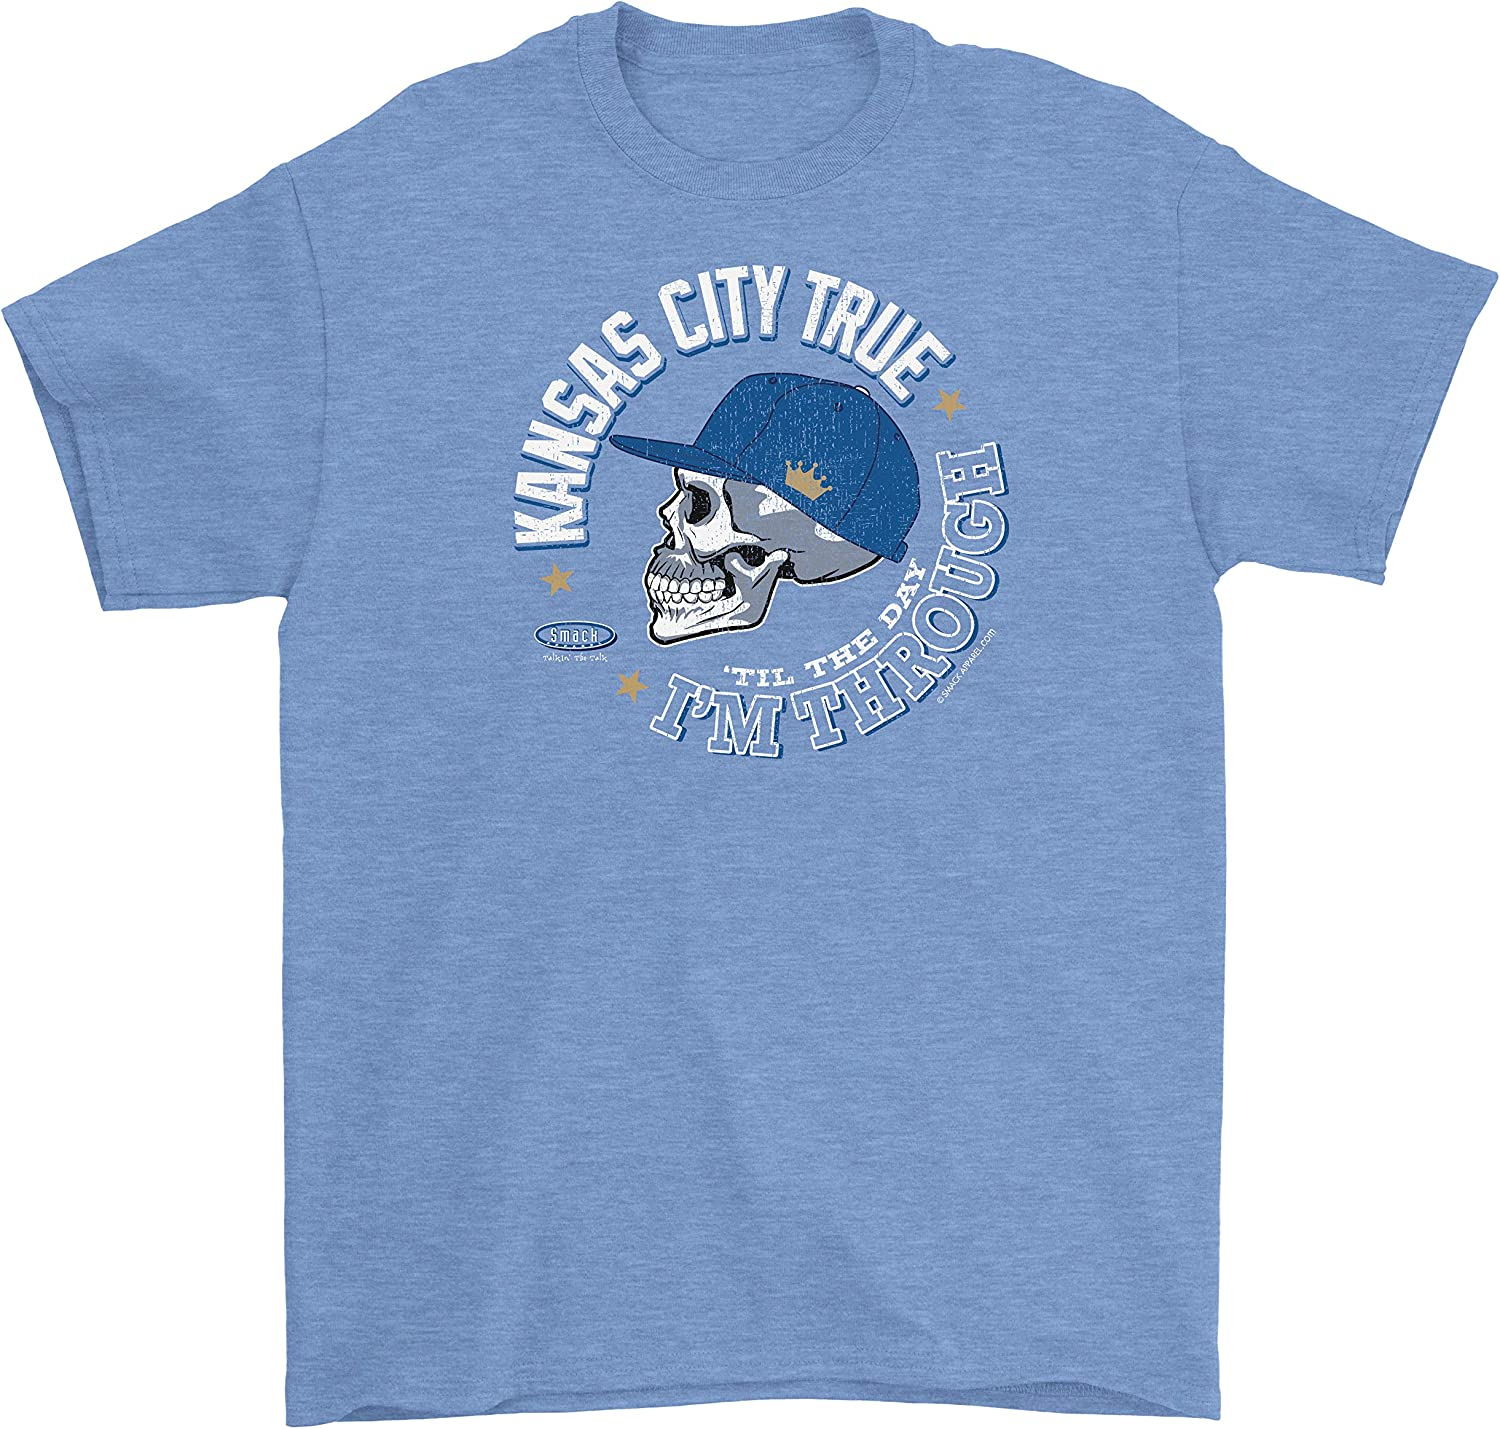 Smack Apparel Kansas City Baseball Fans. Kansas City True 'til The Day I'm Through Blue T-Shirt (Sm-5x)